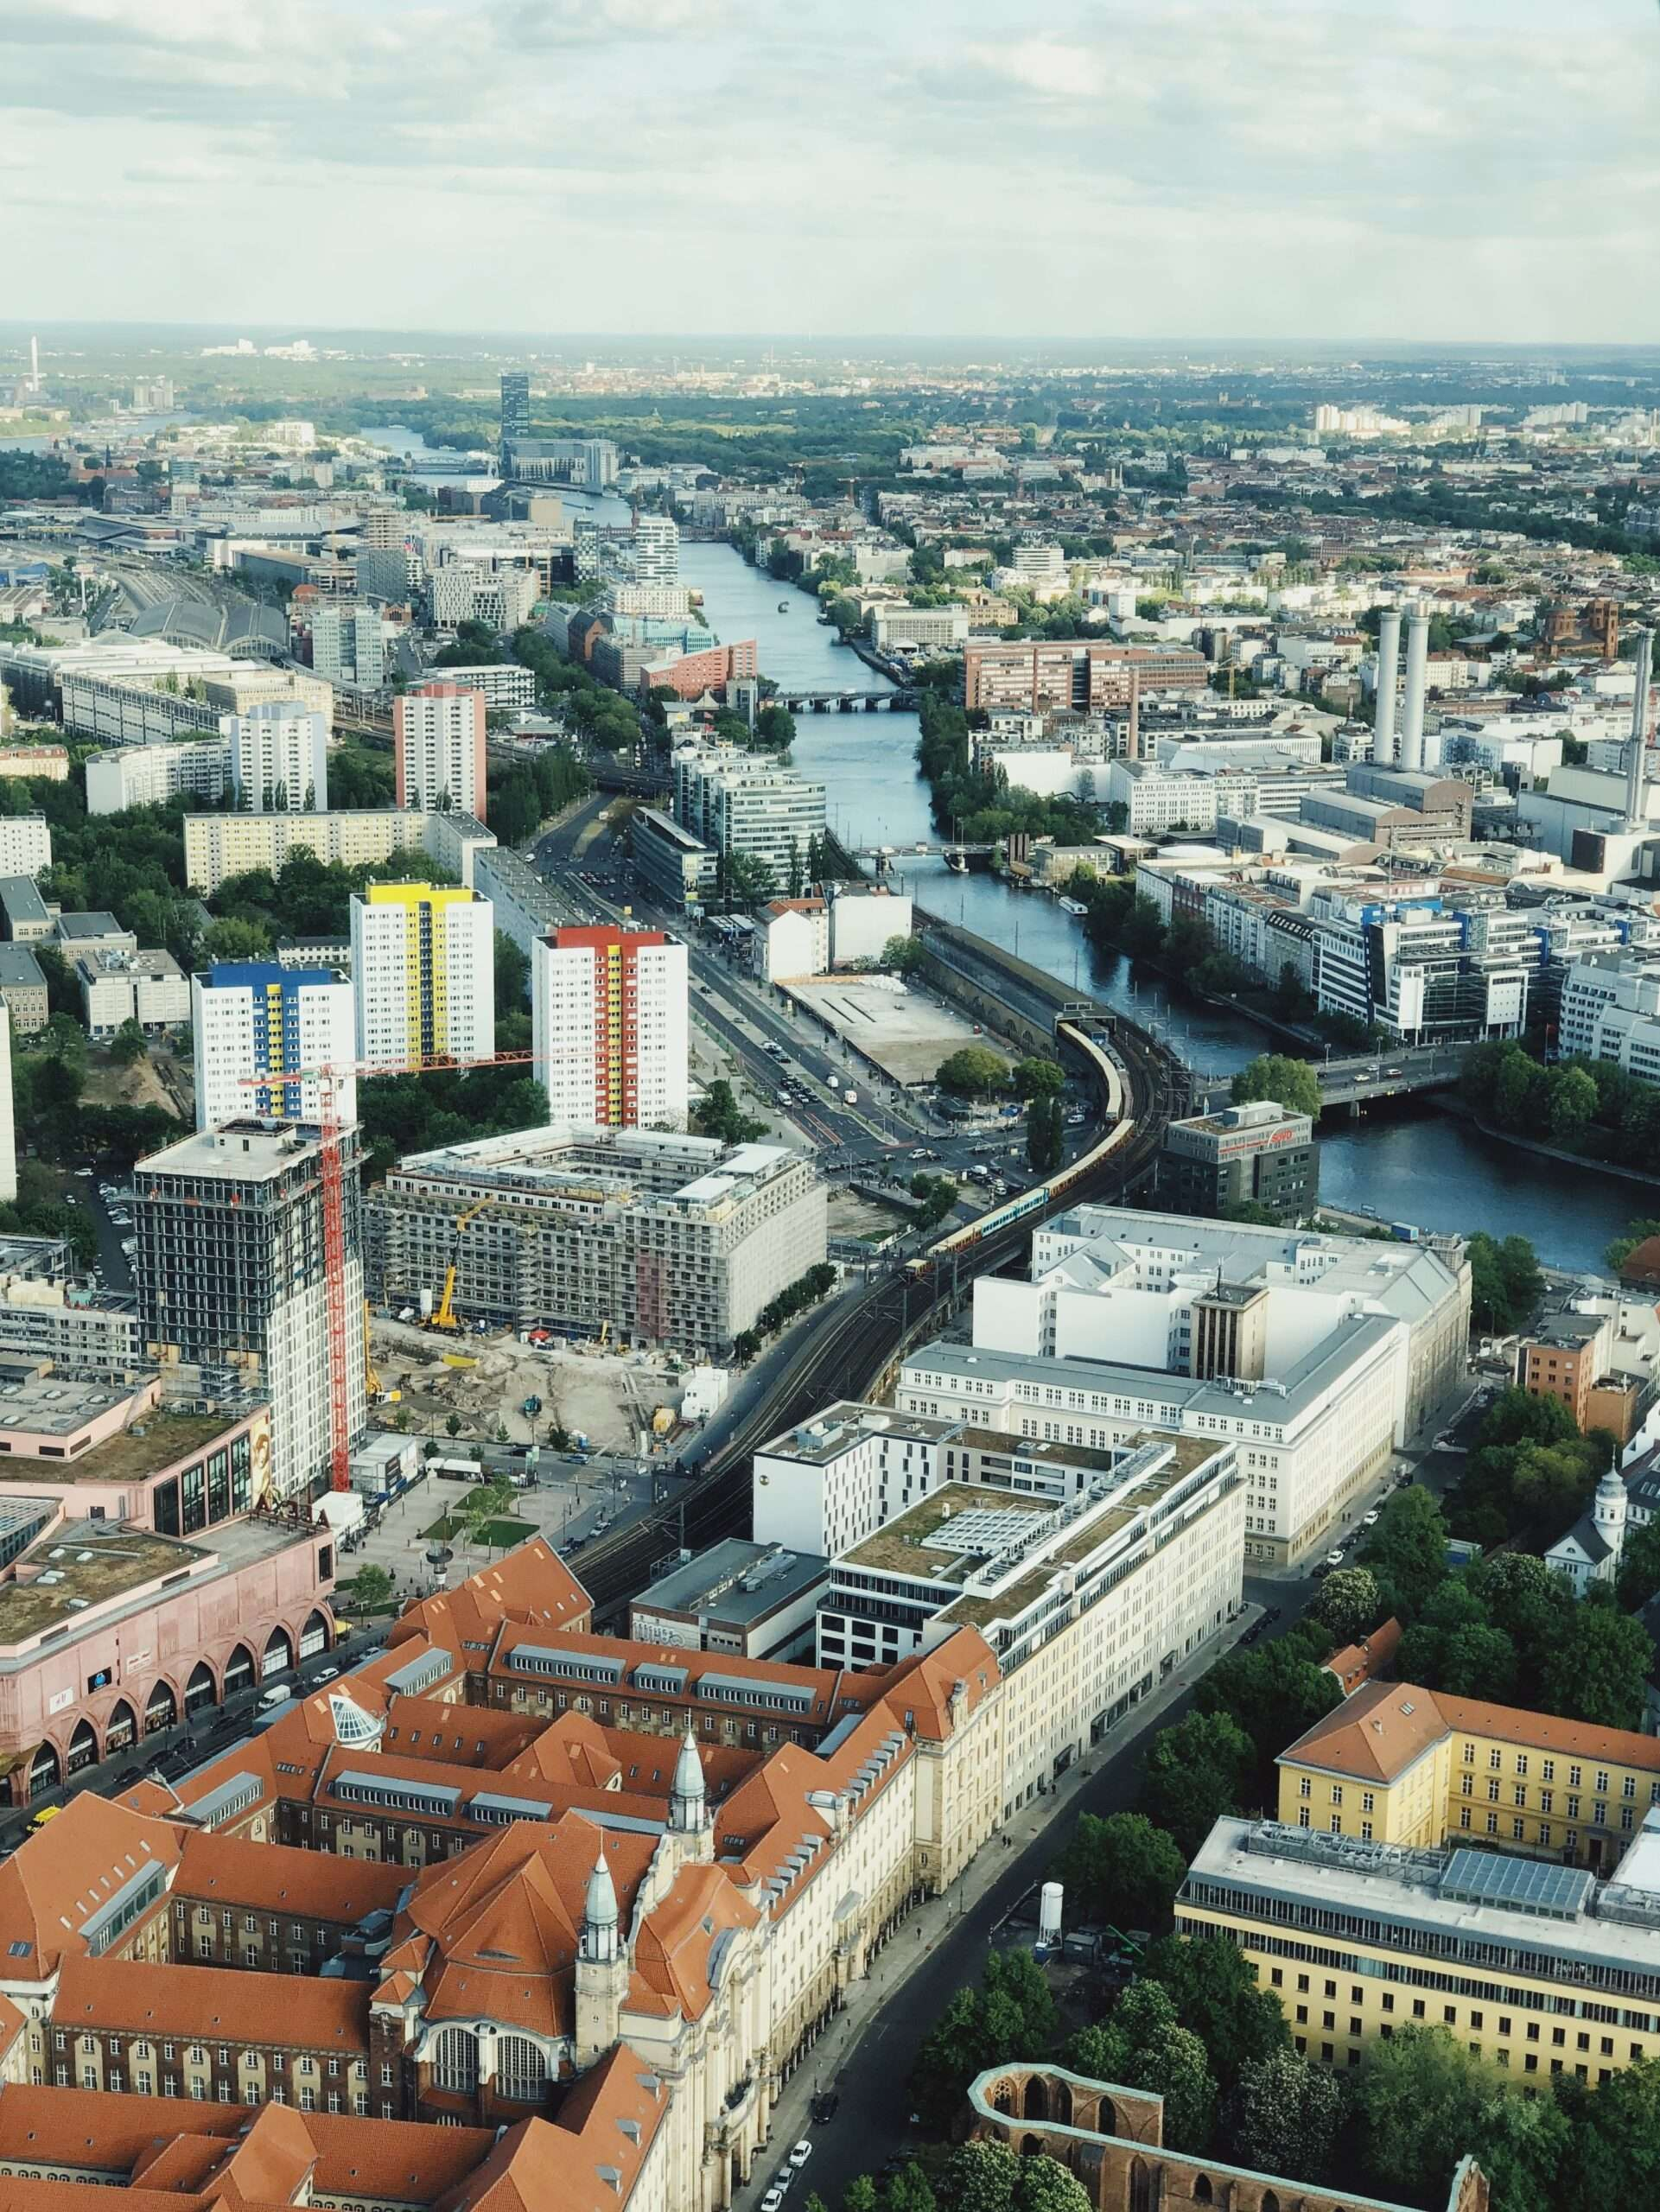 aerial view of Berlin city spanning both sides of the river